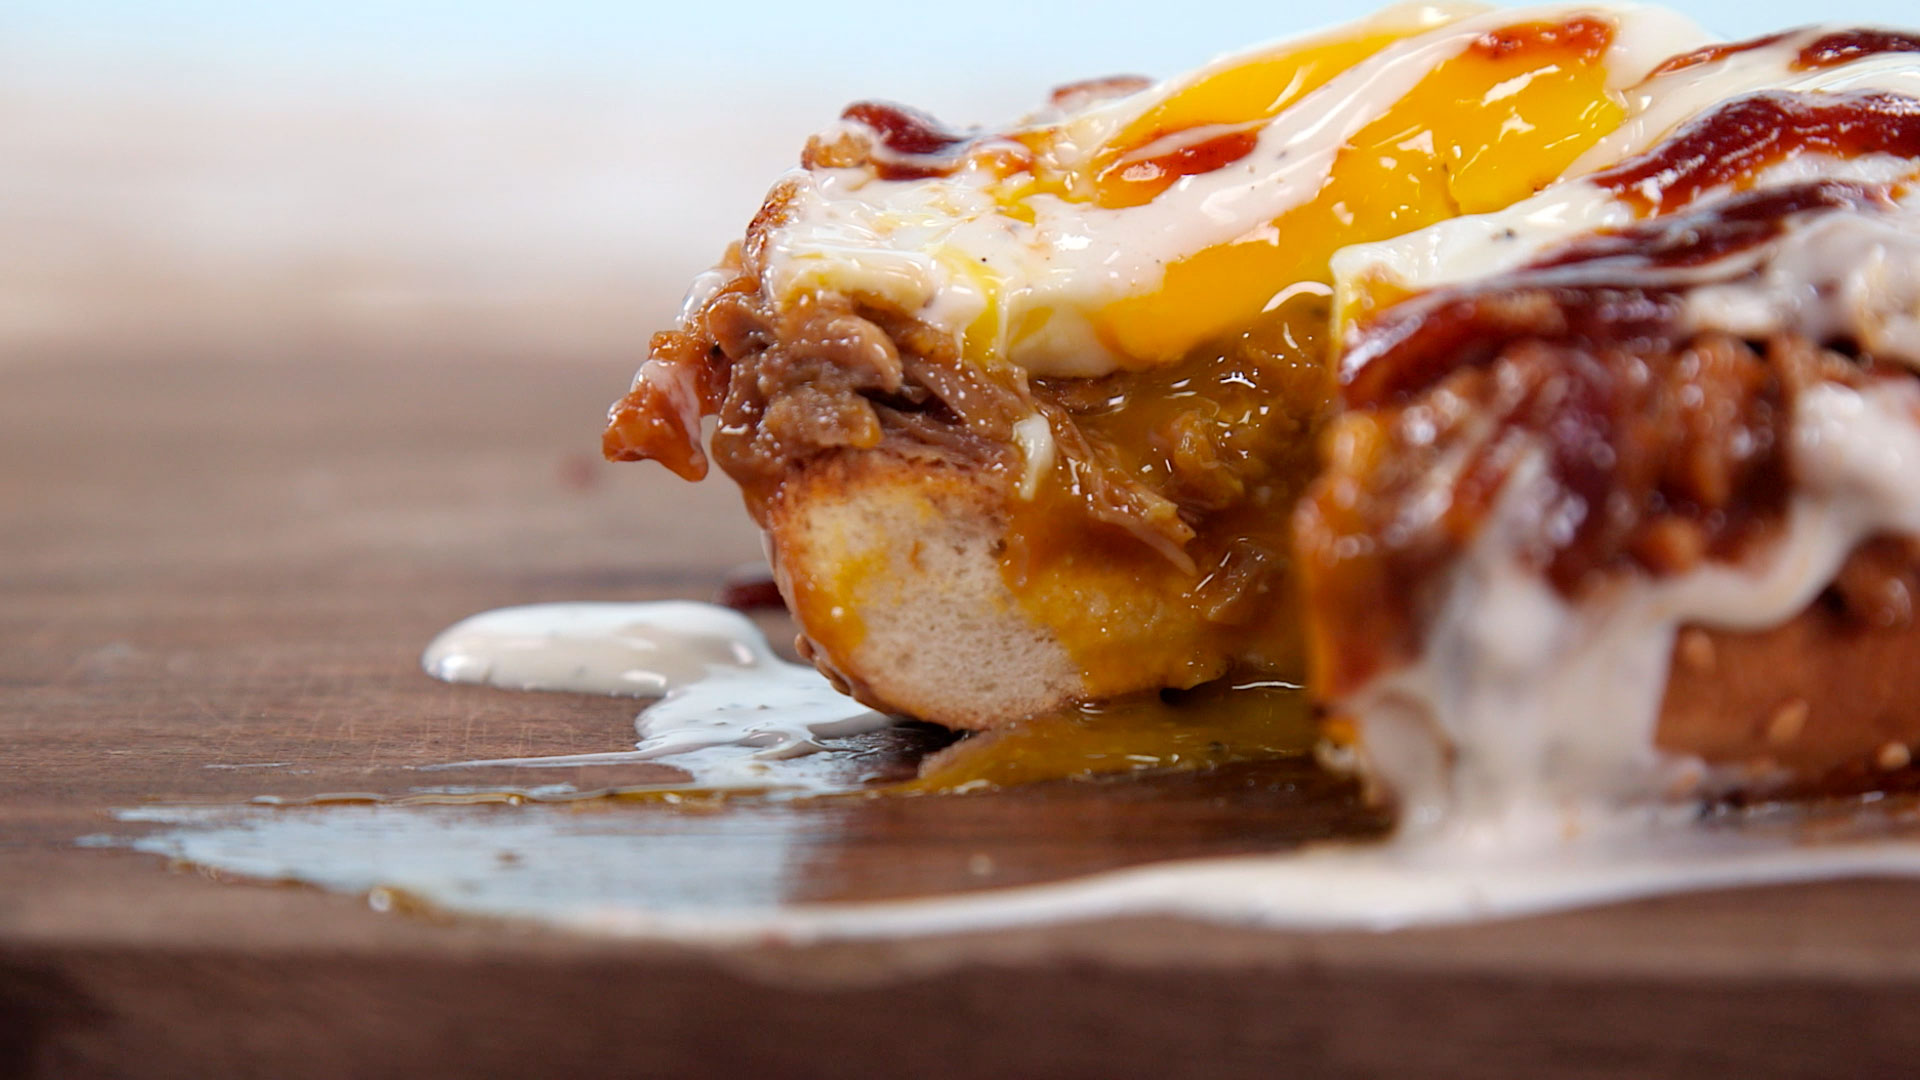 BBQ Bagel Breakfast Sandwich Still Image